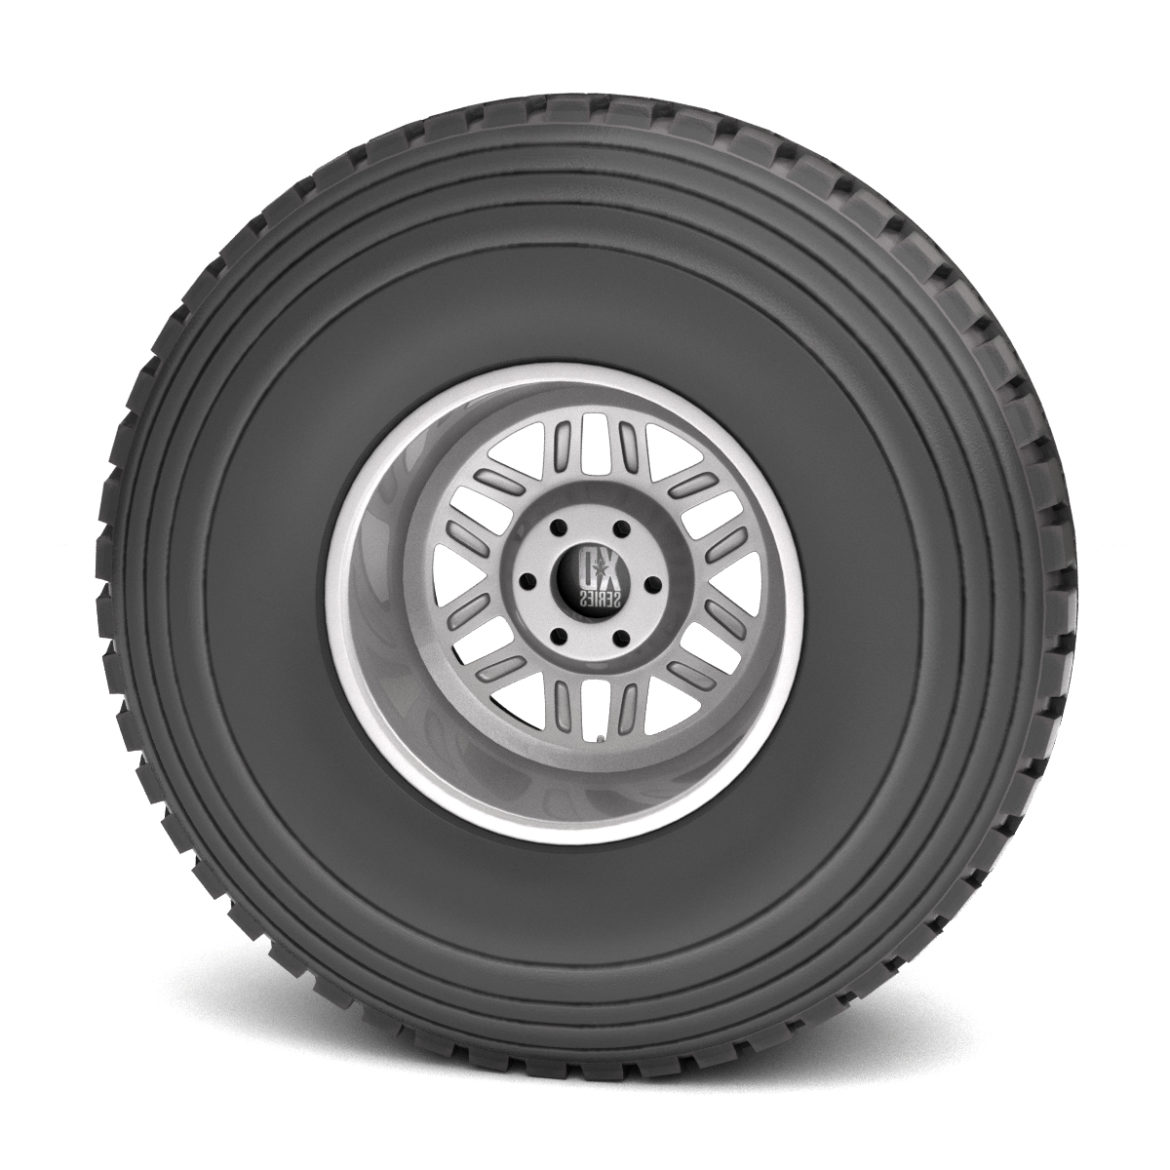 off road wheel and tire 9 3d model 3ds max fbx obj 295114